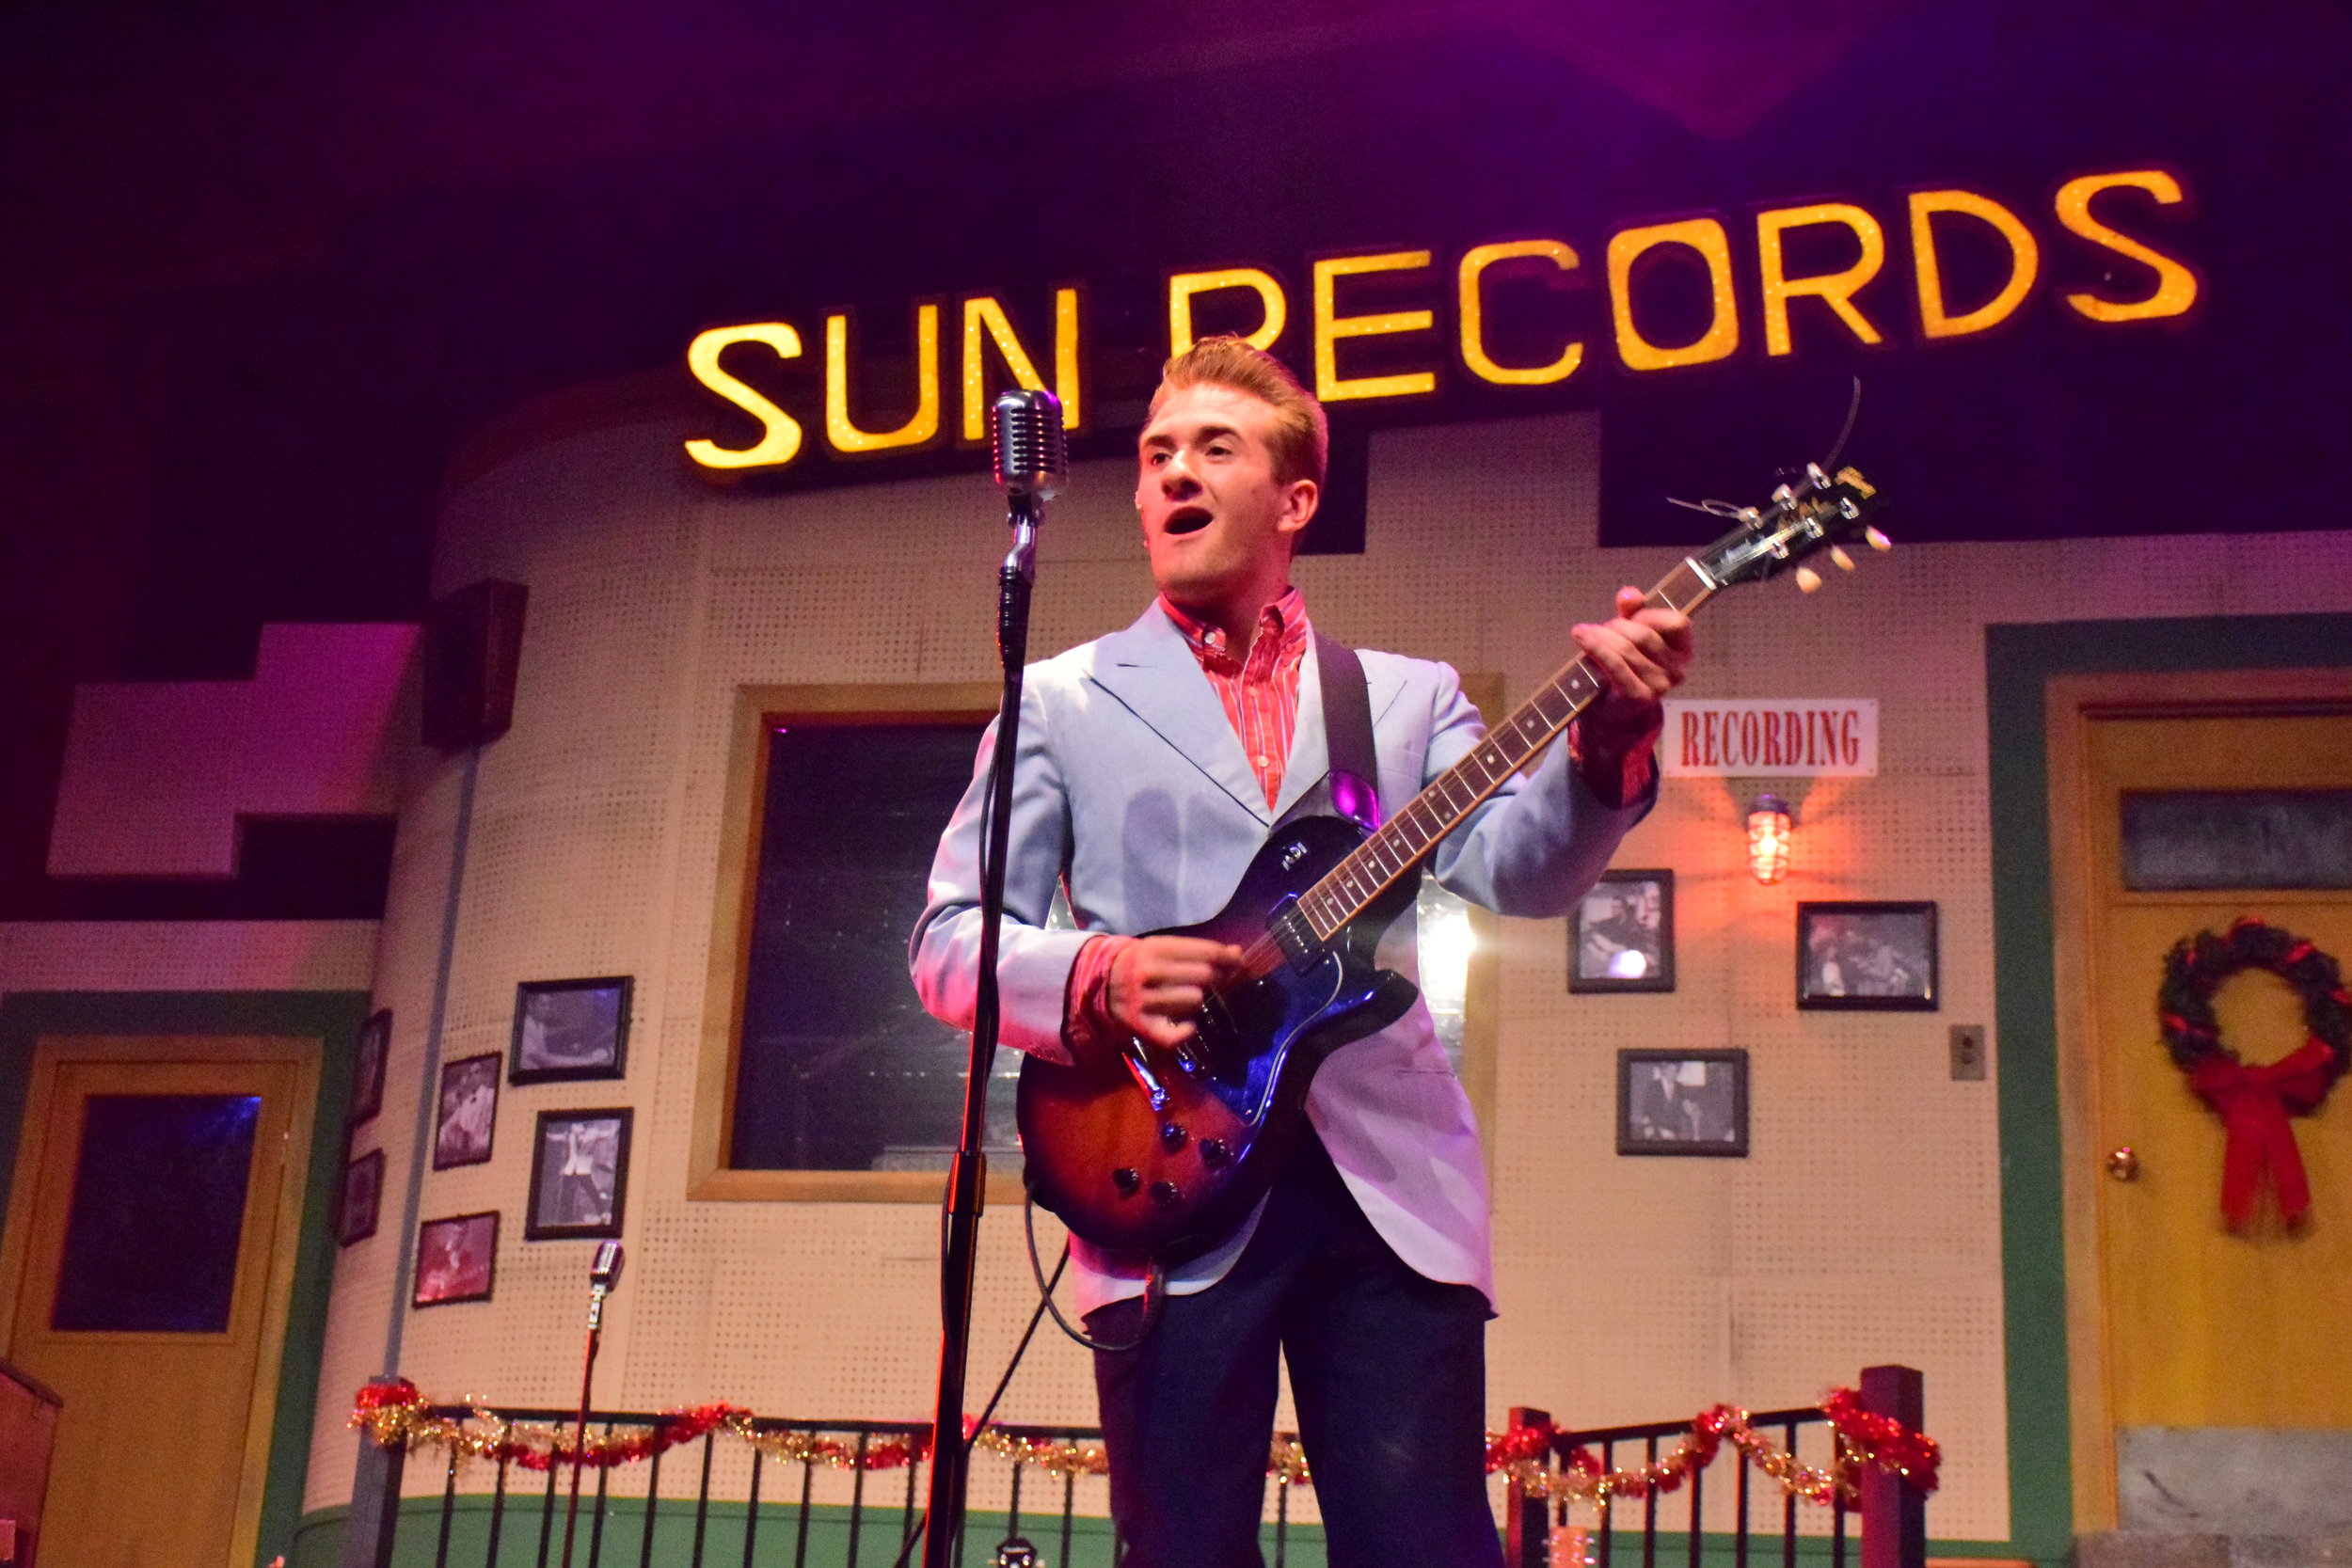 Tyson Gerhardt as Carl Perkins